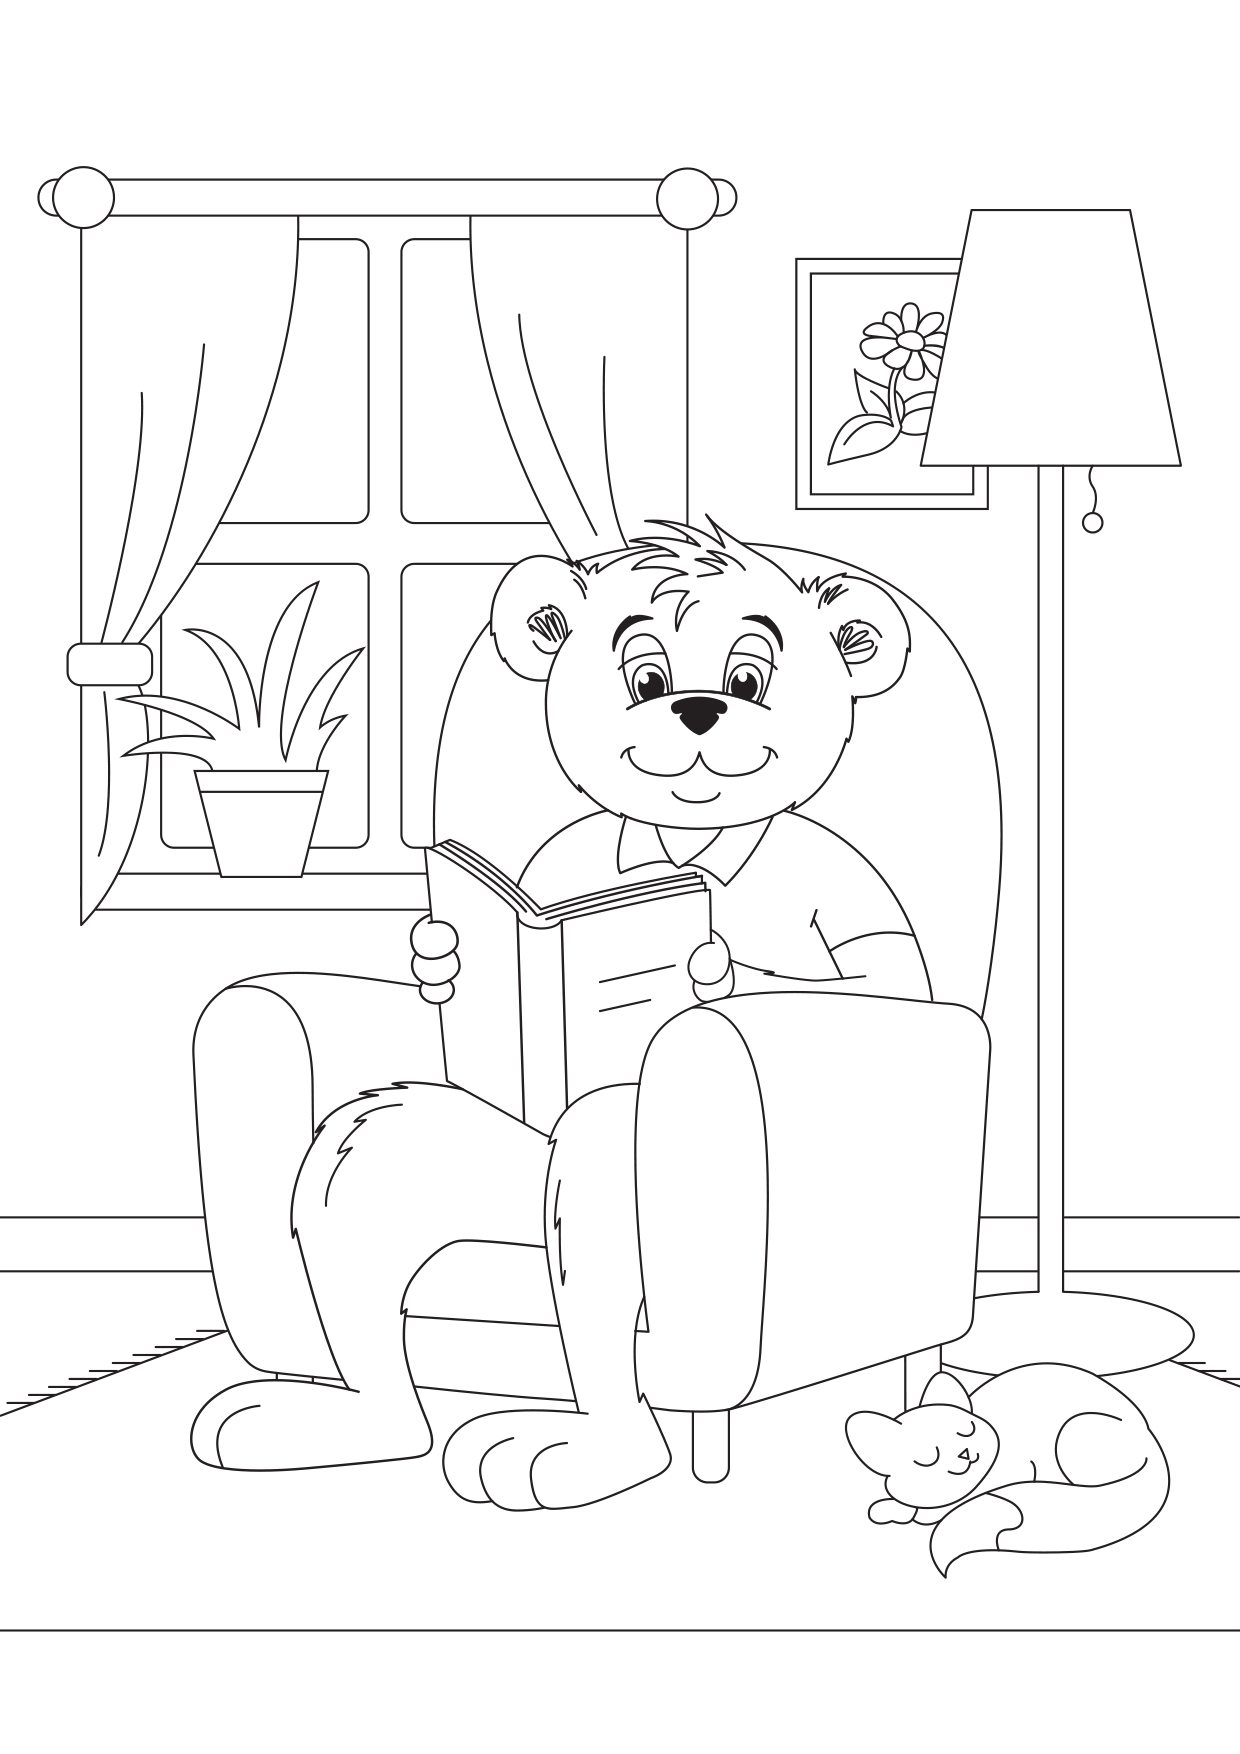 Billy the Bear_Reading Colouring 150dpi.jpg